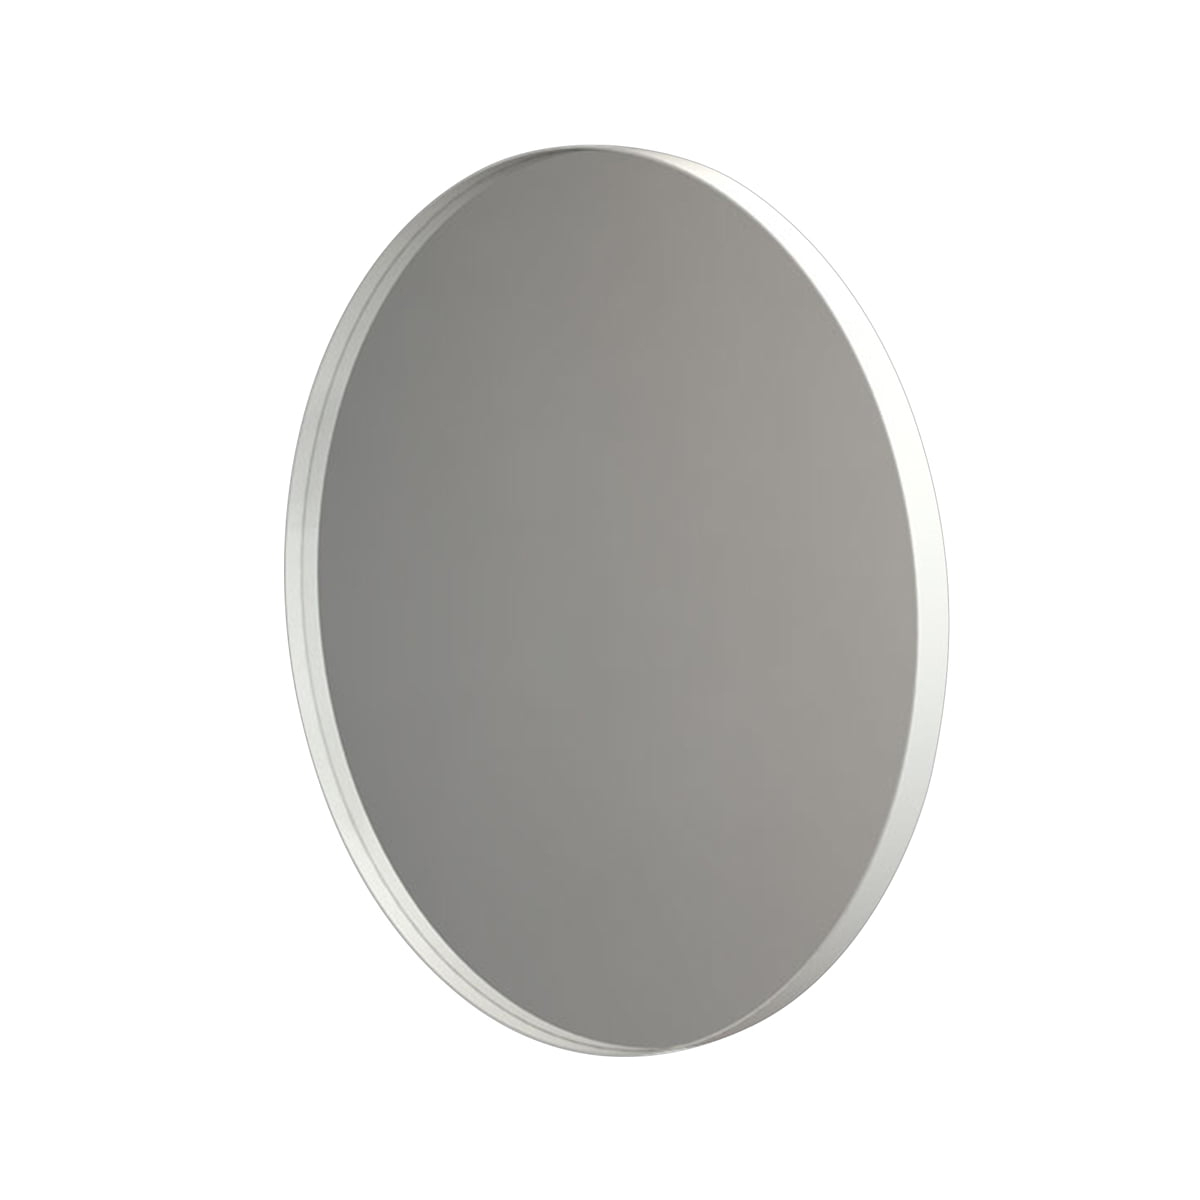 Frost – Unu Wall Mirror 4134, Ø 40 Cm, White Intended For Most Popular White Round Wall Mirrors (View 17 of 20)